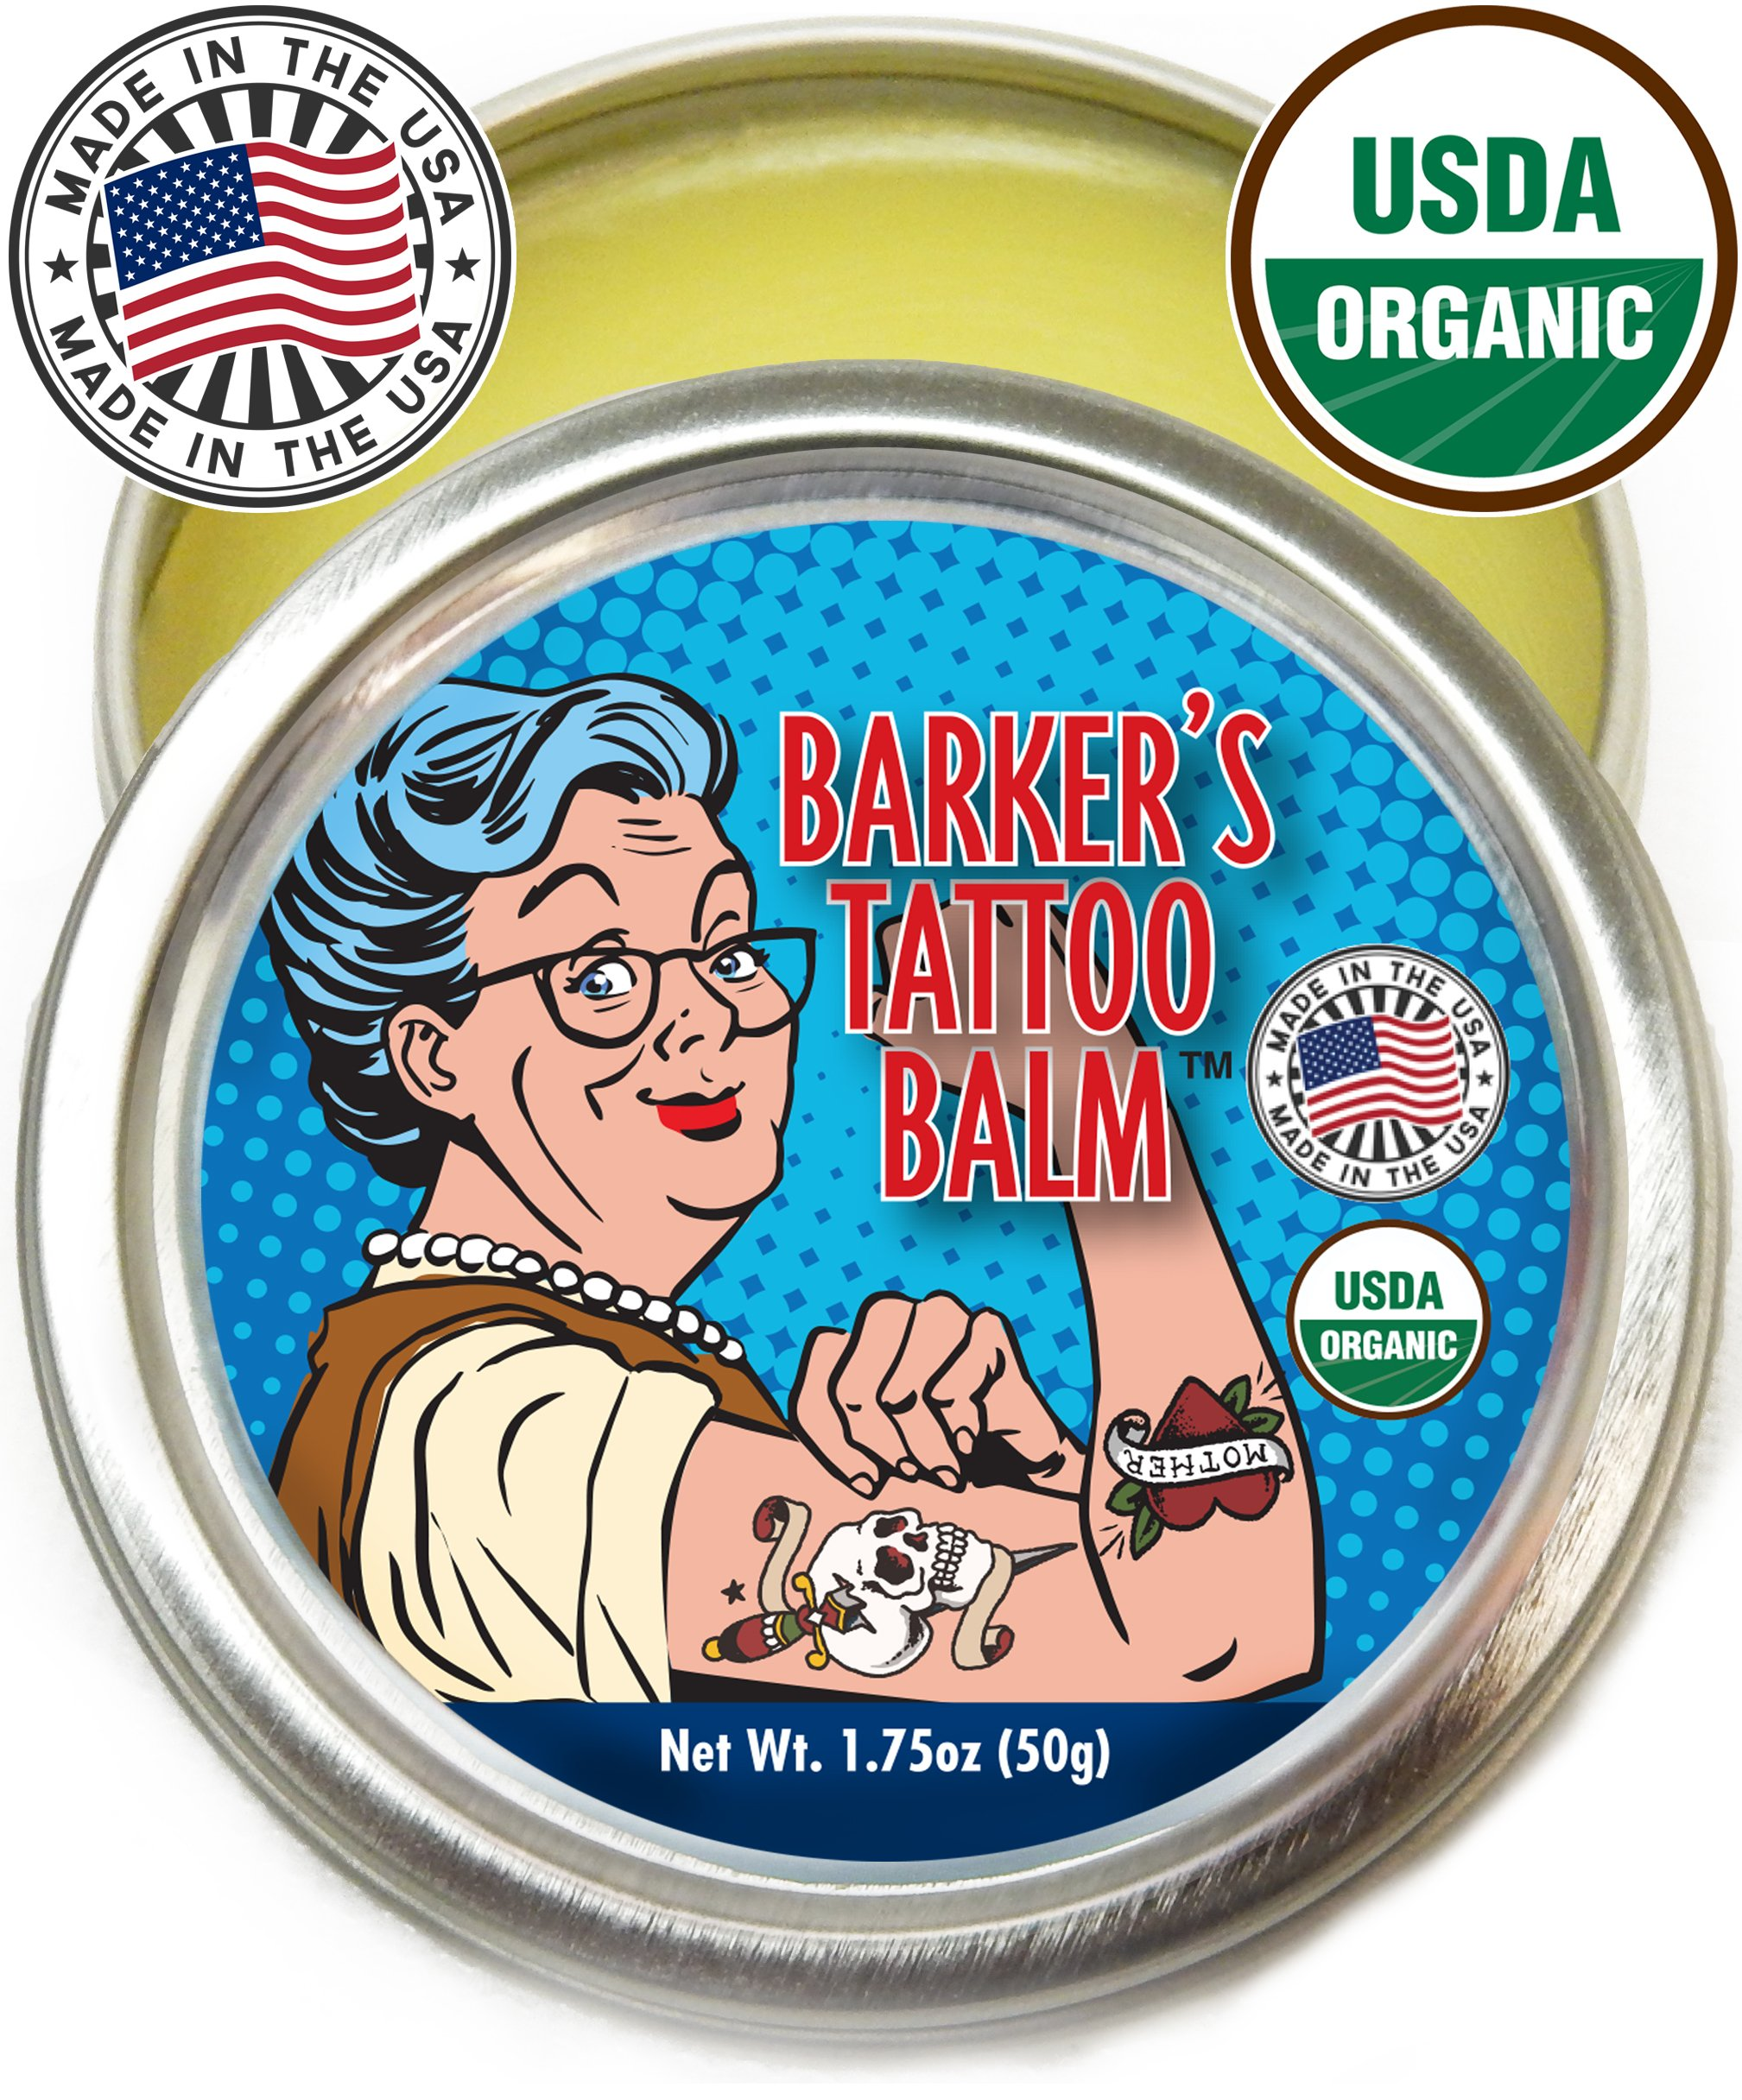 Organic Tattoo Aftercare Balm - 100% Natural, Made in USA, & USDA Certified Tat Salve to Moisturize, Protect, & Heal Skin by Barker's Tattoo Balm by Barker Goods